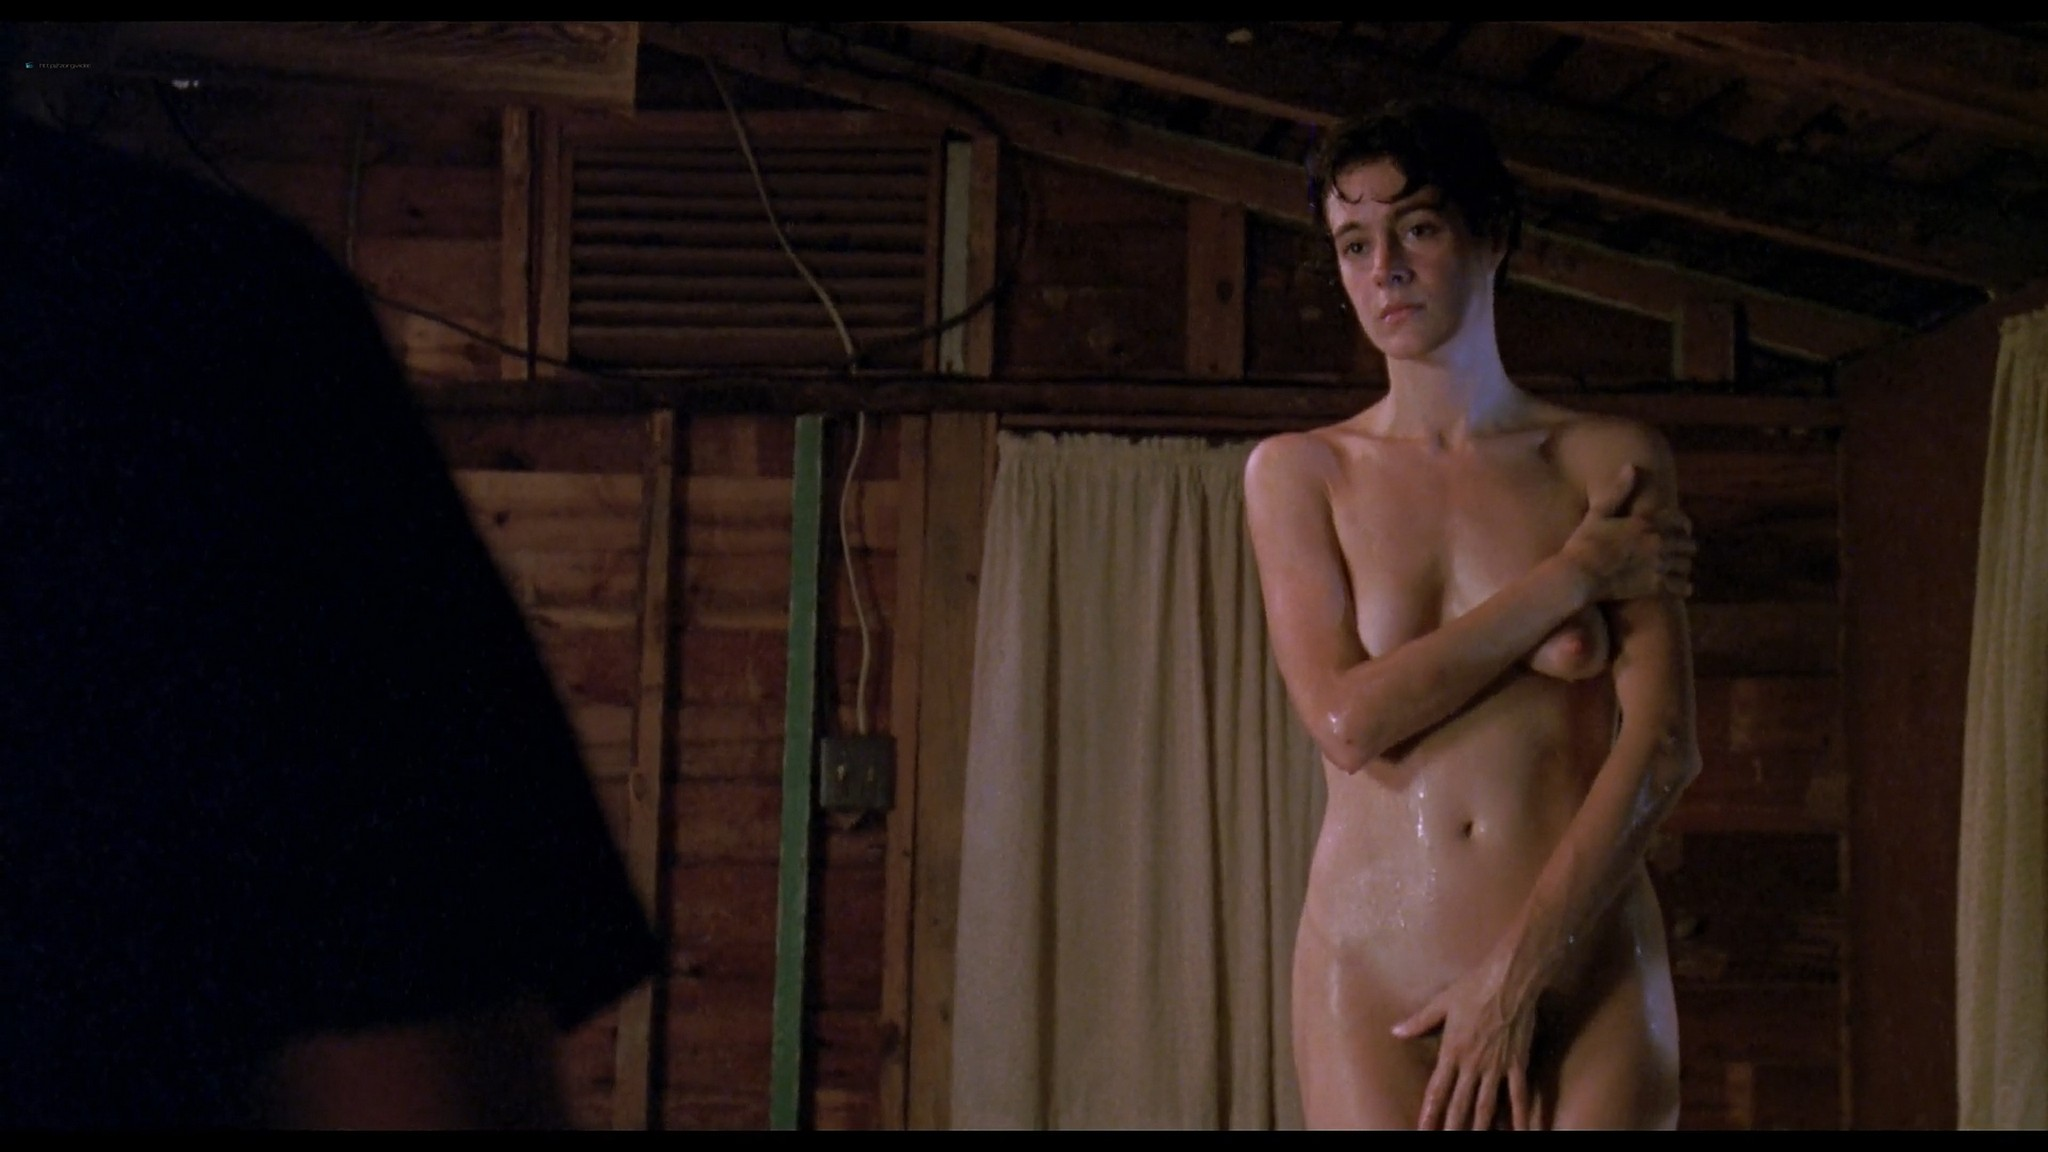 Sean Young nude full frontal Fern Dorsey and others nude Love Crimes 1992 1080p Web 9